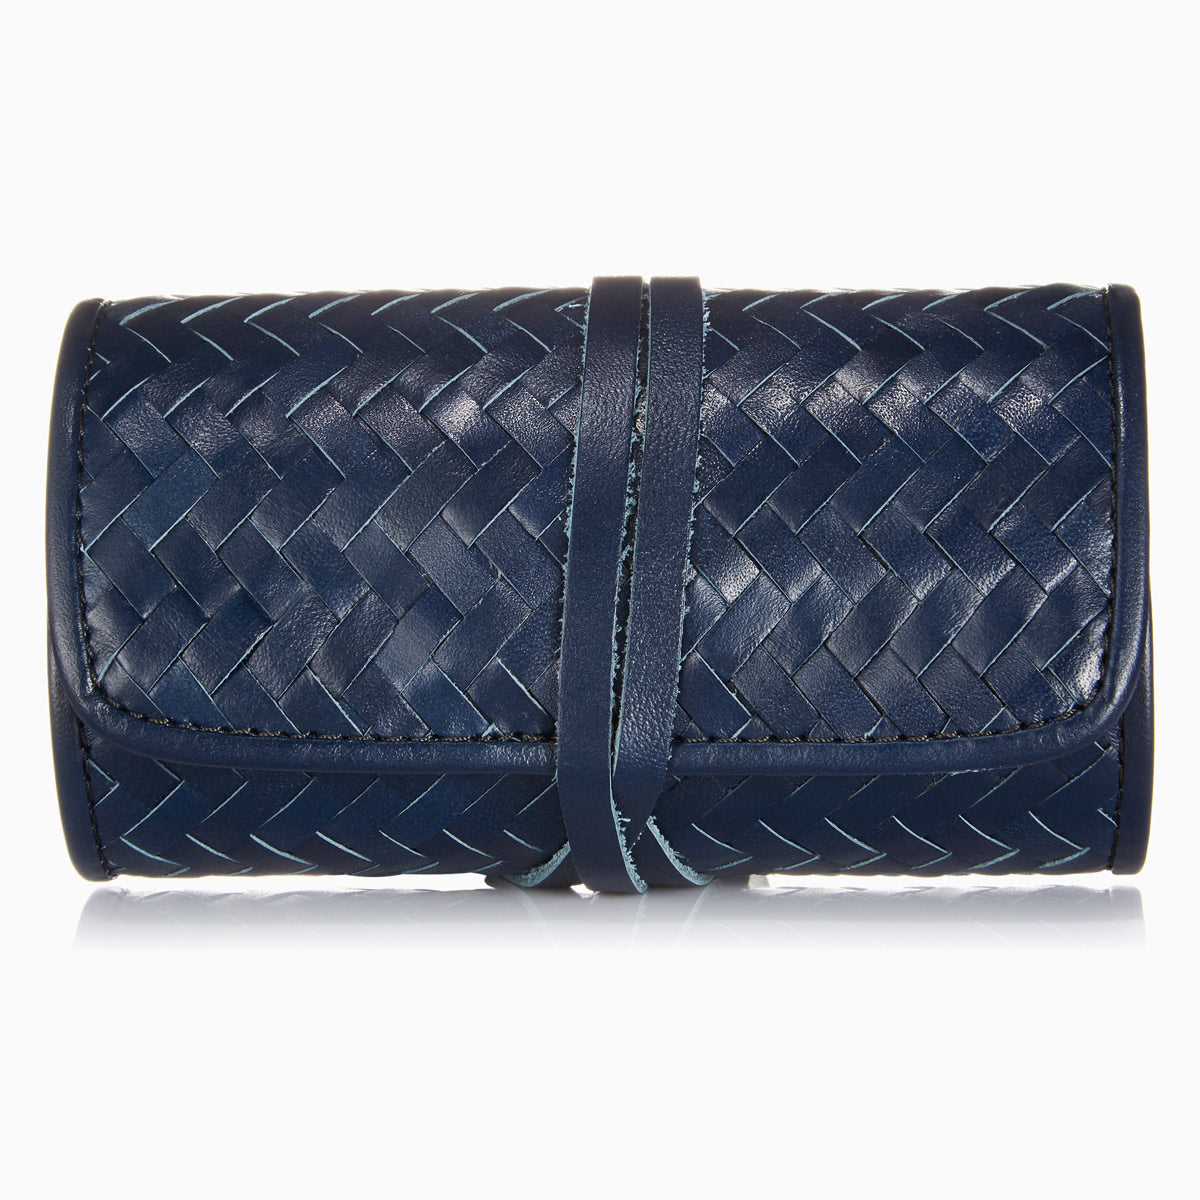 Herringbone Grooming Roll, Navy Blue: Men's Manicure Set